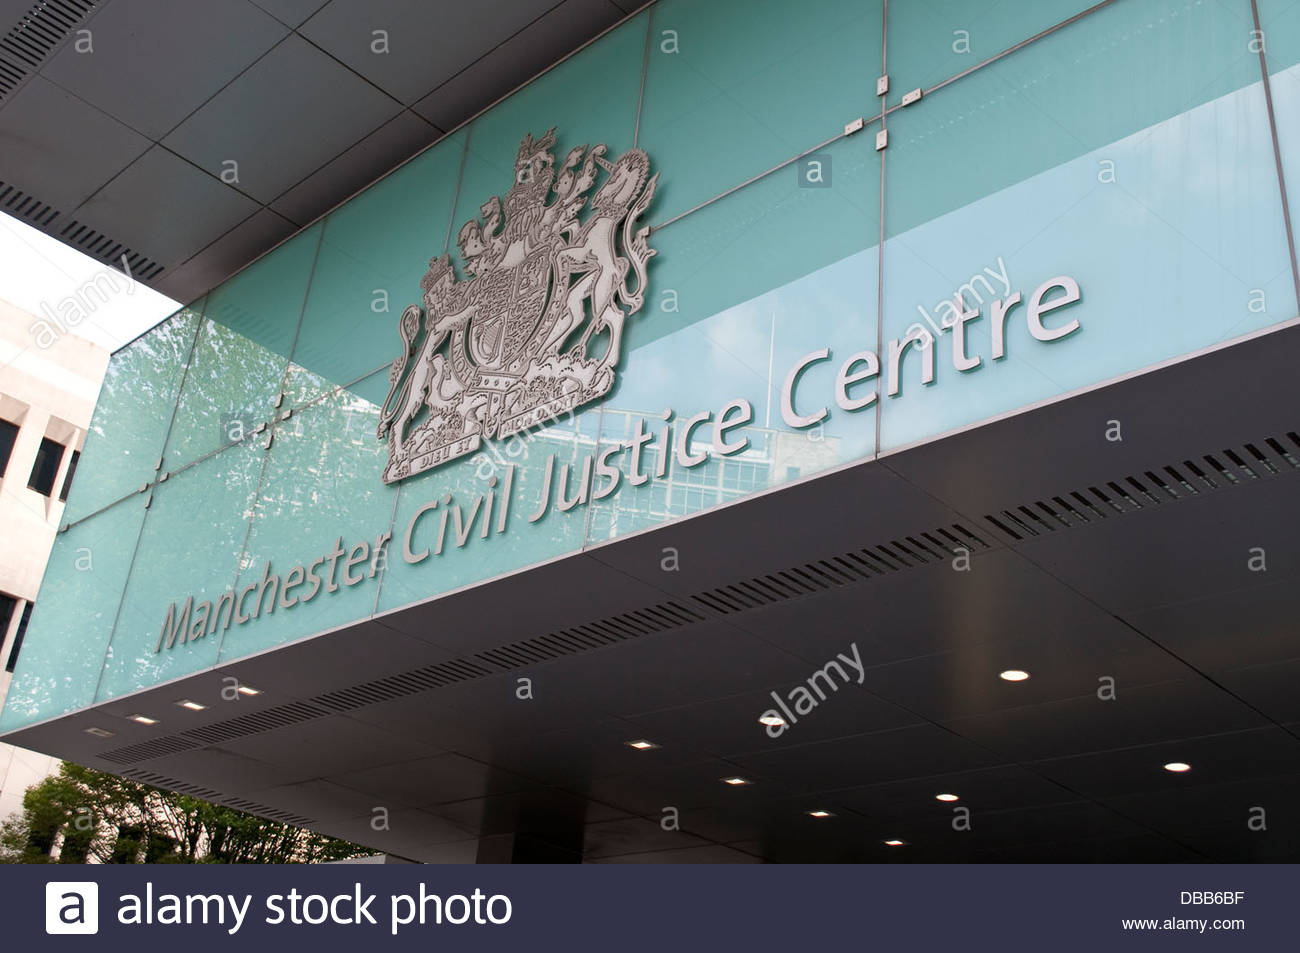 Manchester Civil Justice Centre, Manchester, UK - Stock Image